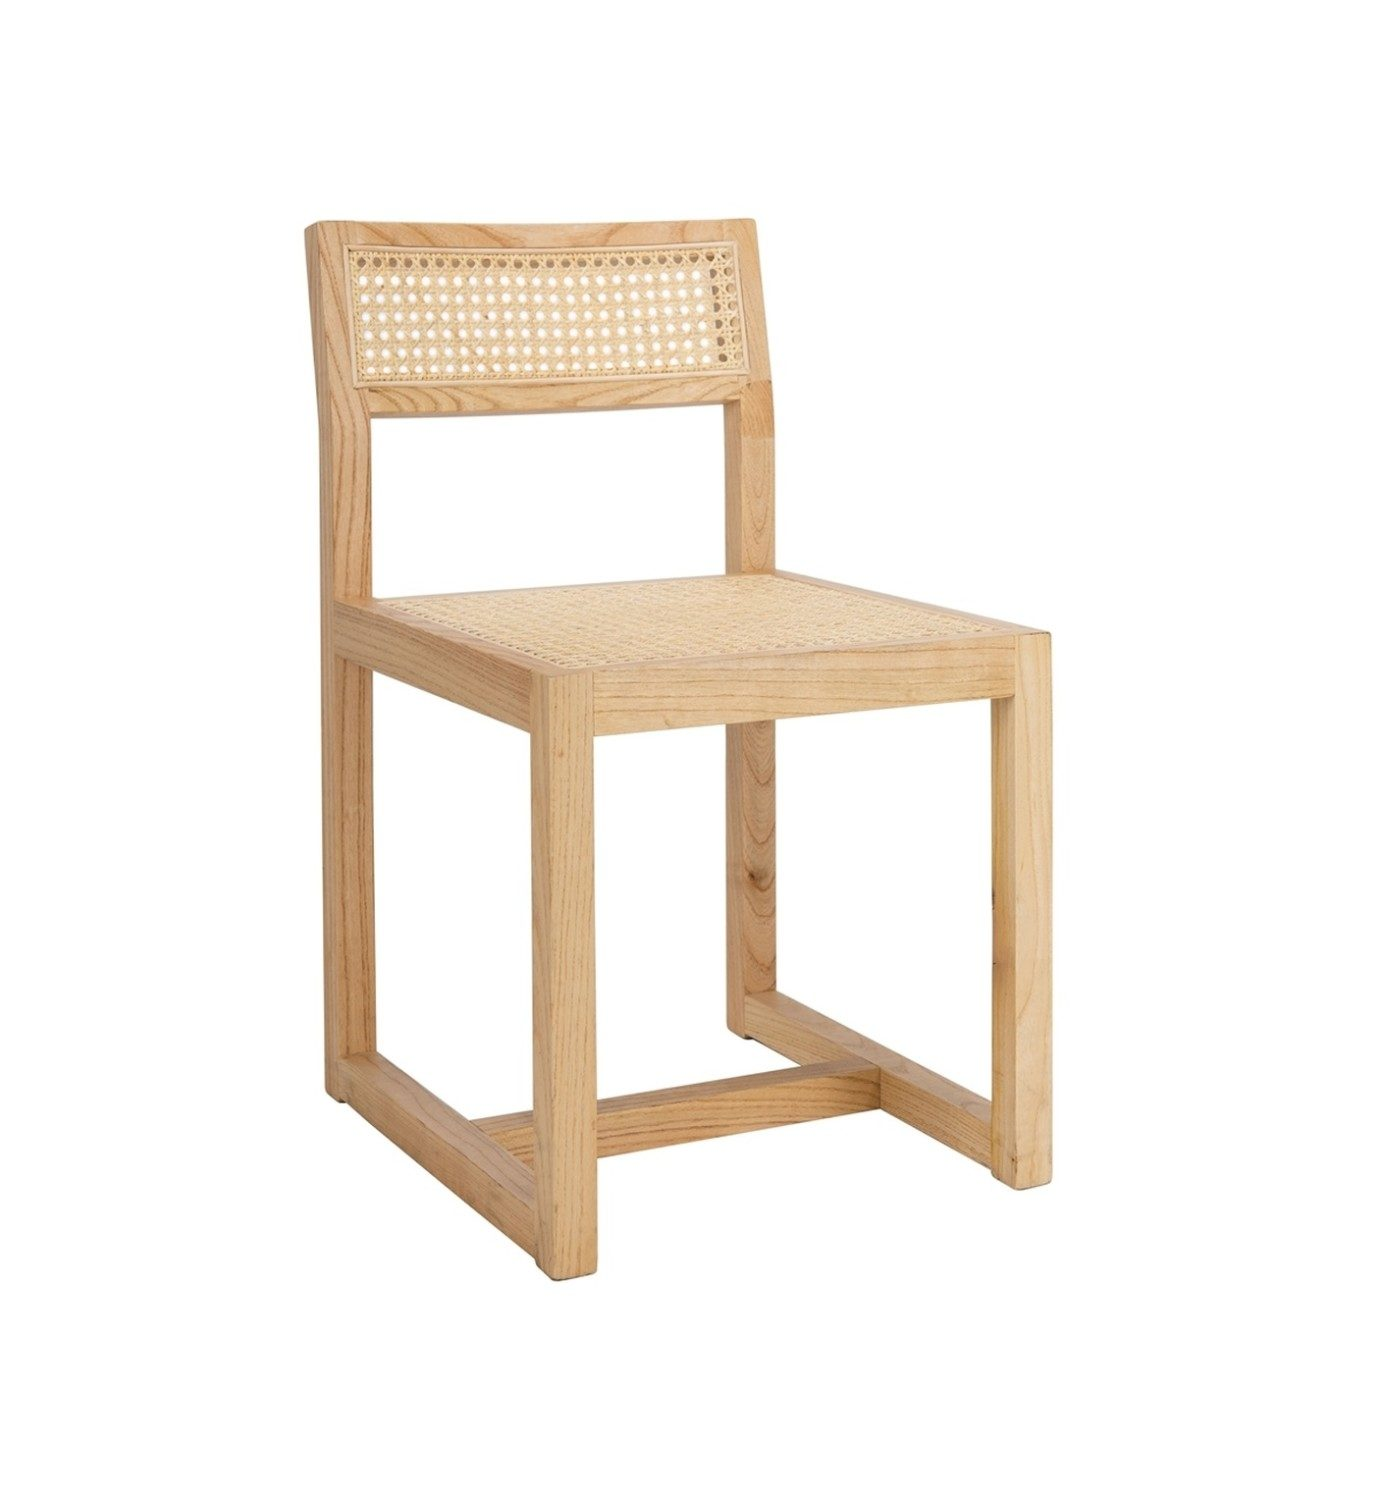 Tremendous Cane Dining Chair Natural Ncnpc Chair Design For Home Ncnpcorg